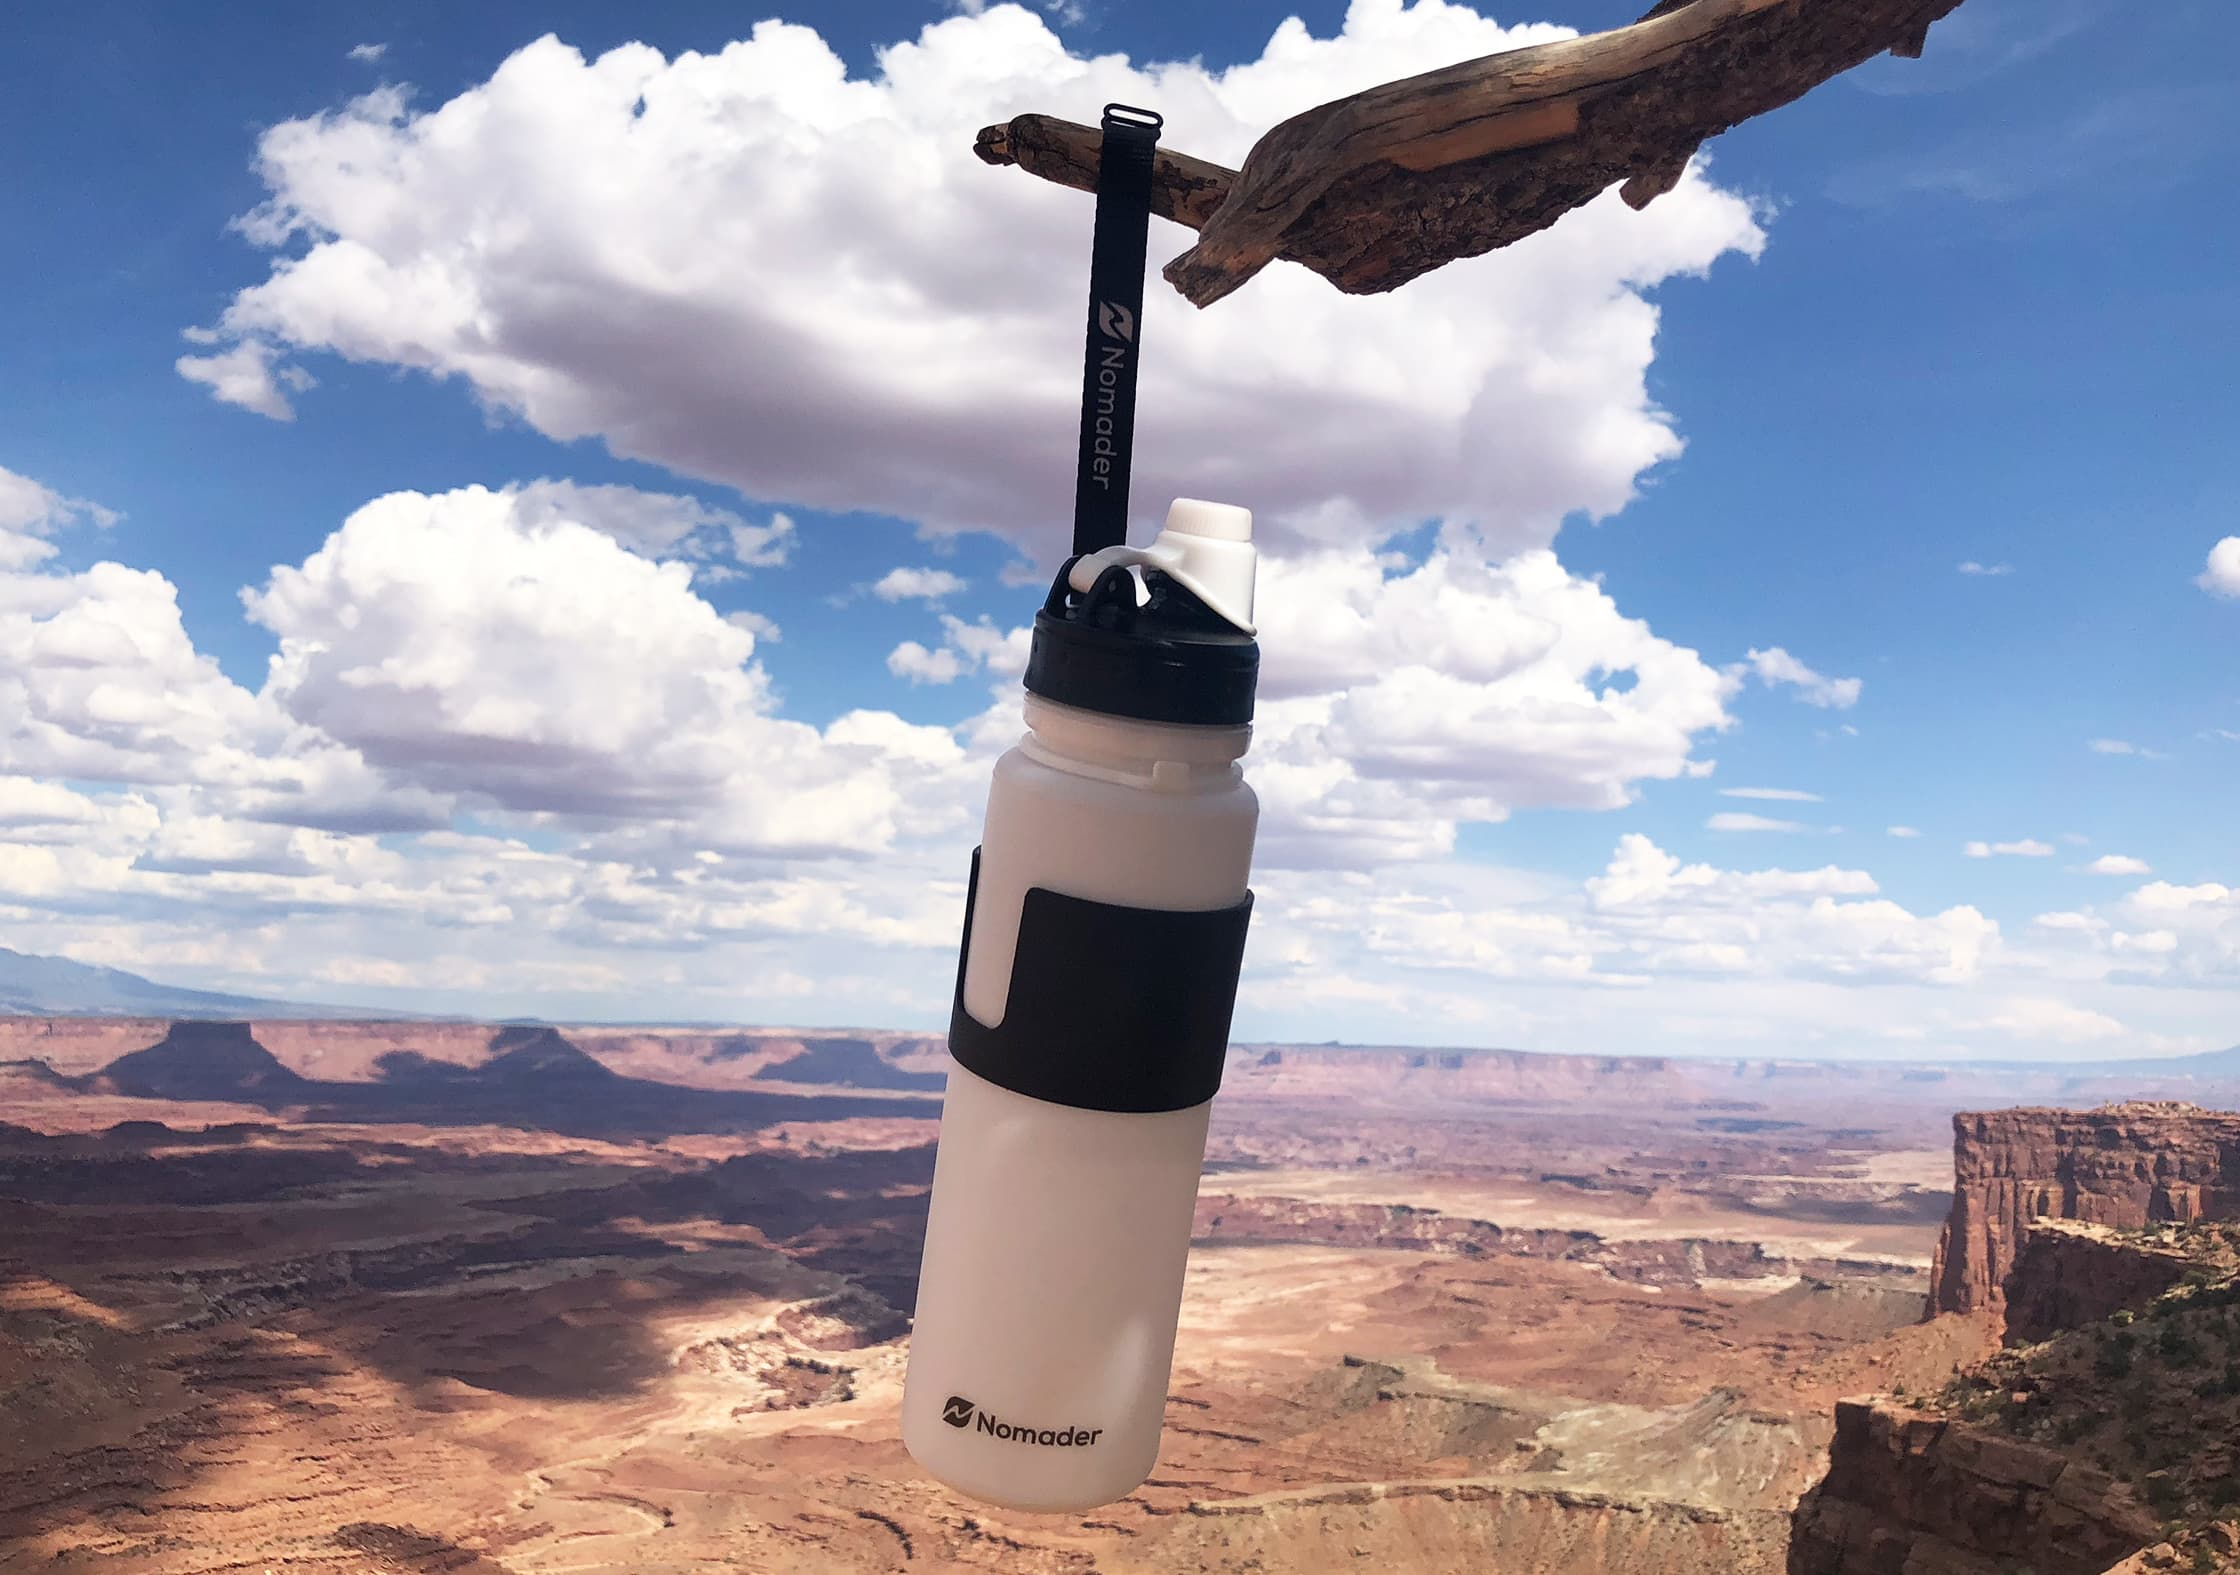 Nomader Collapsible Water Bottle Utilizing Strap at Canyonlands National Park